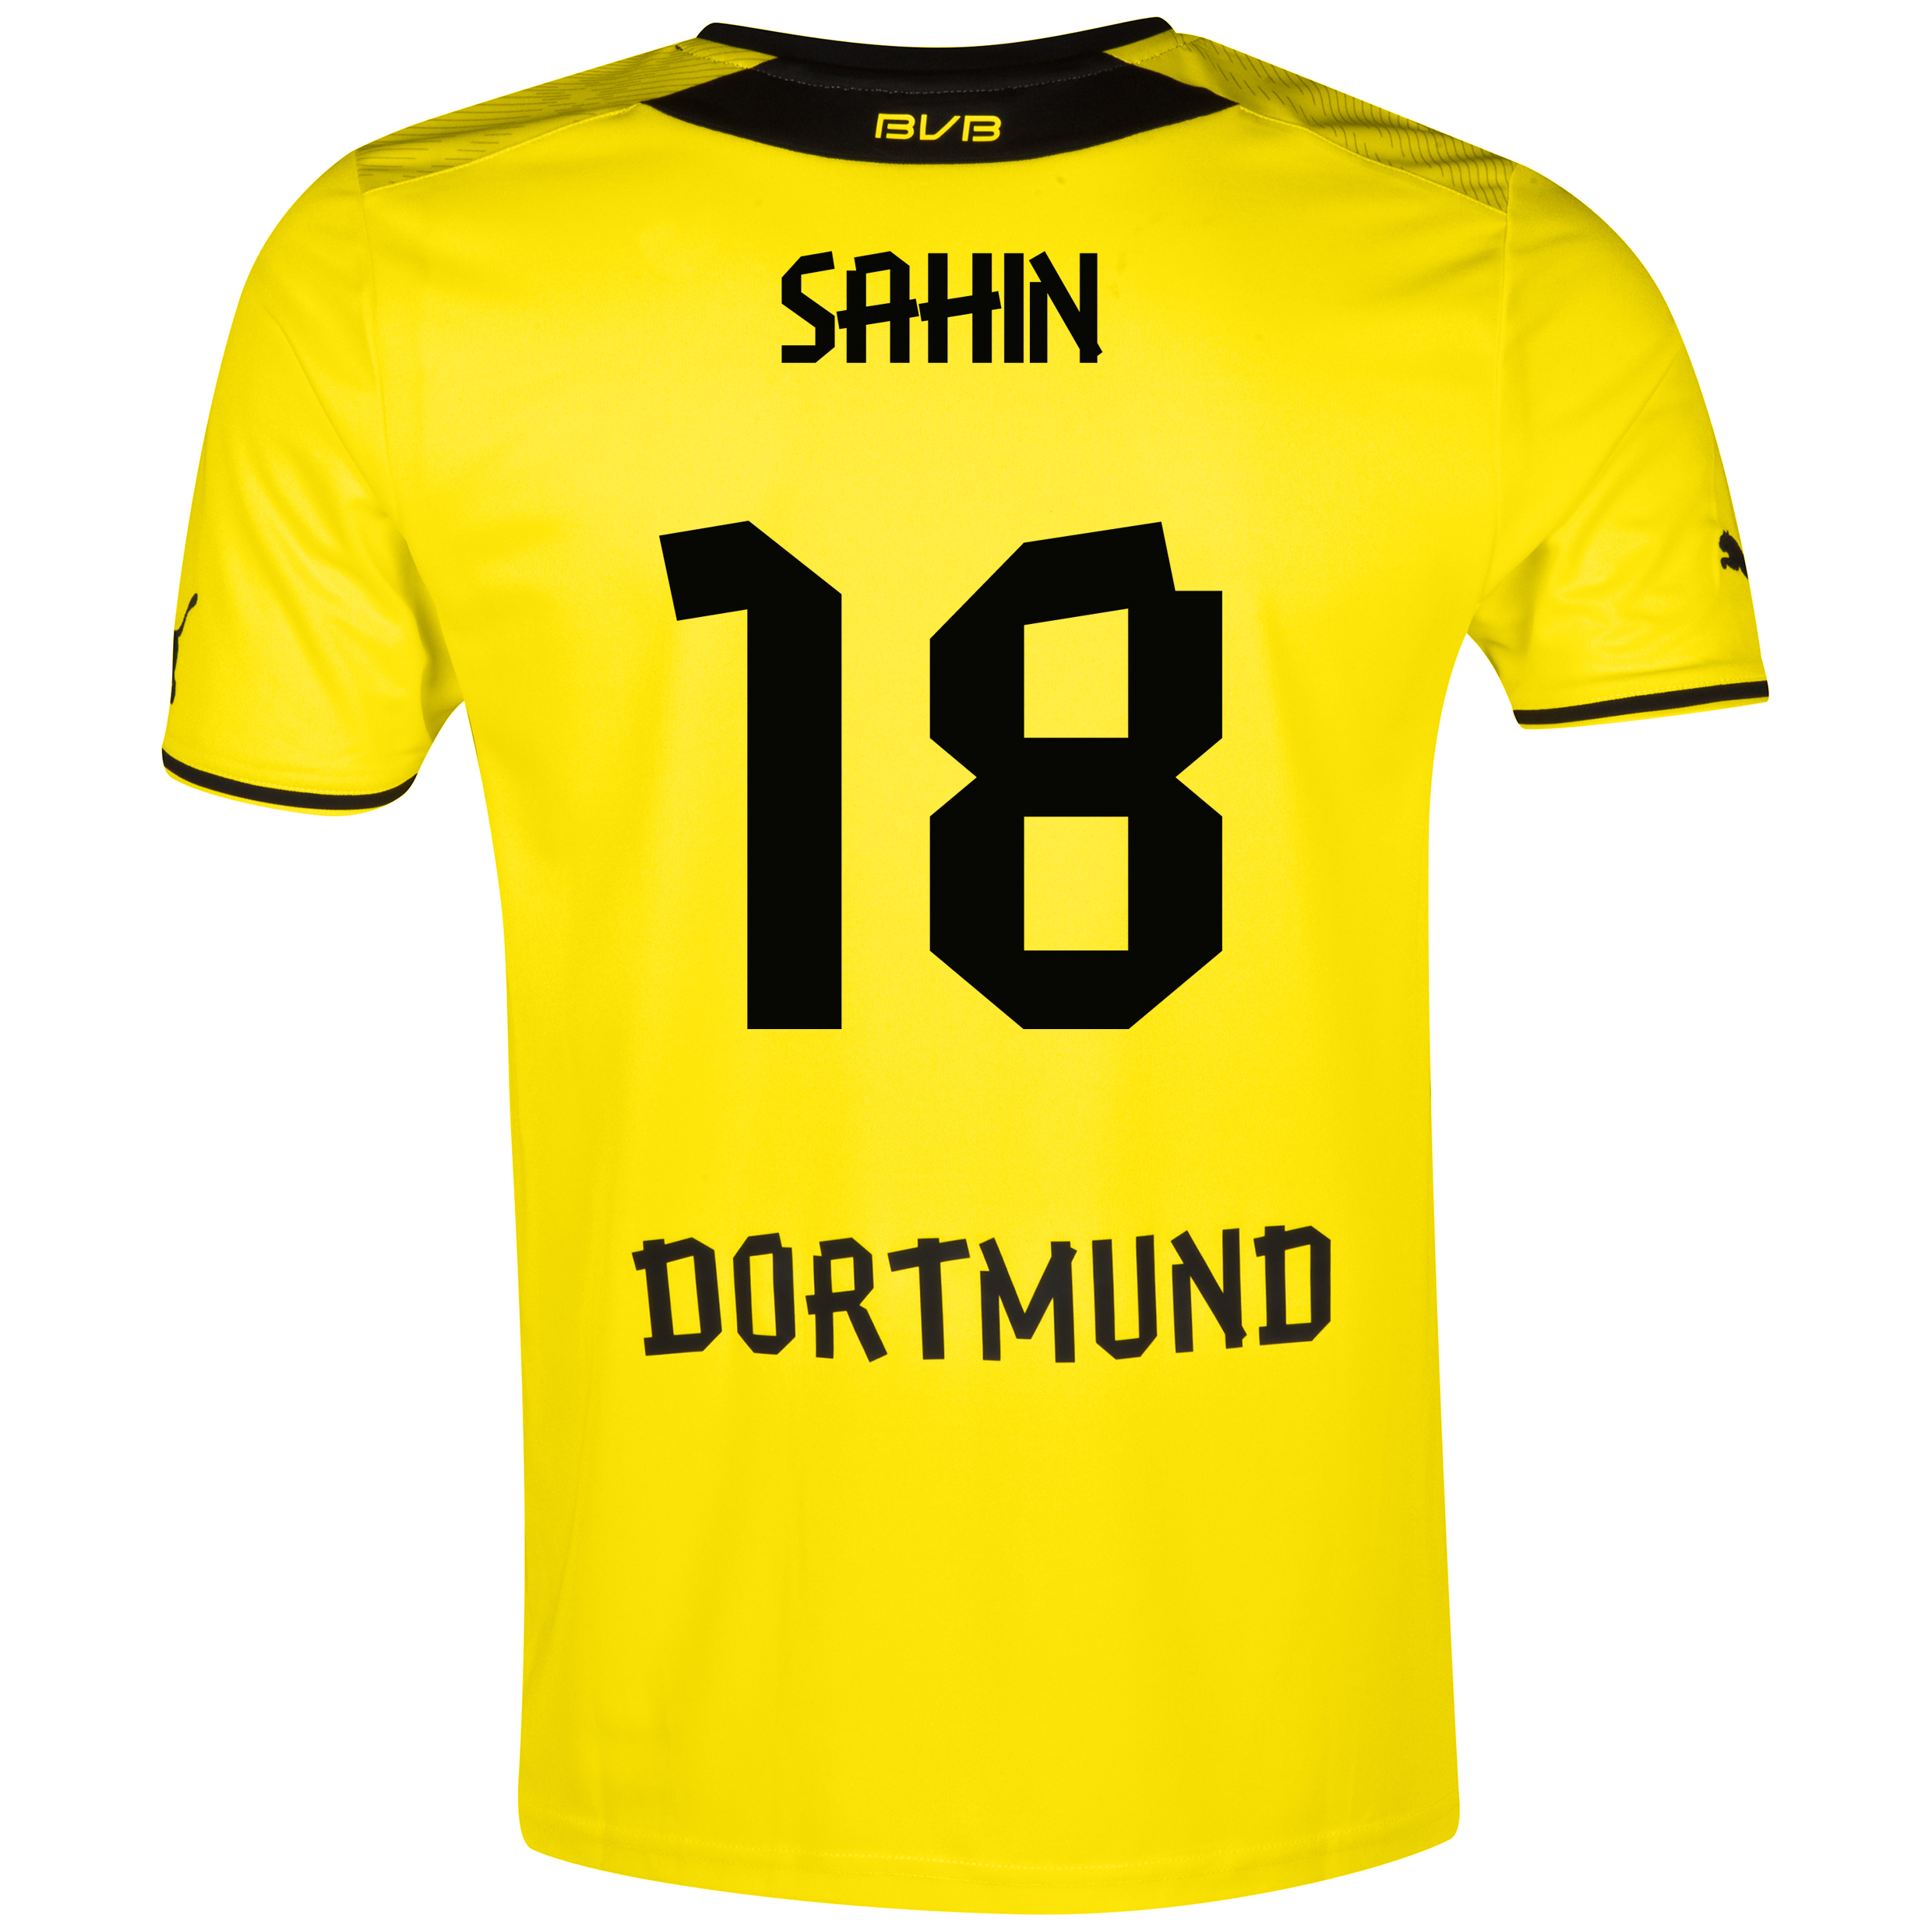 BVB Home Shirt 2013/14 with Sahin 18 printing